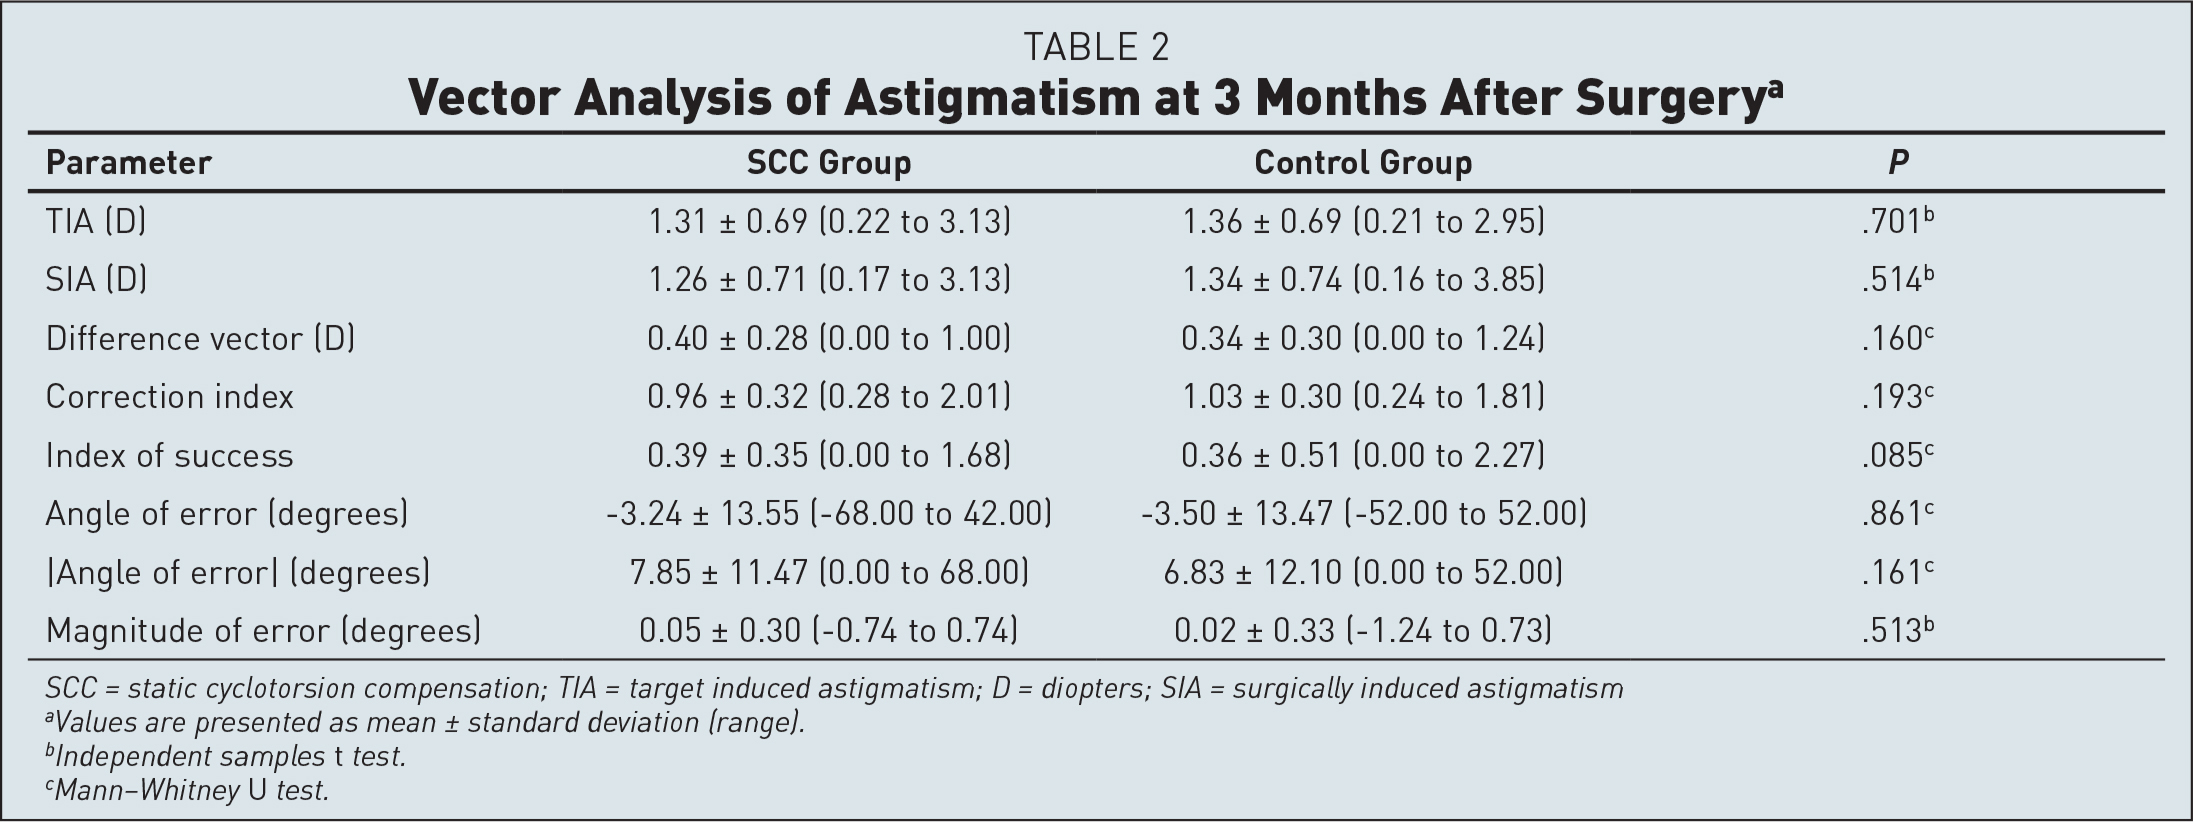 Vector Analysis of Astigmatism at 3 Months After Surgerya